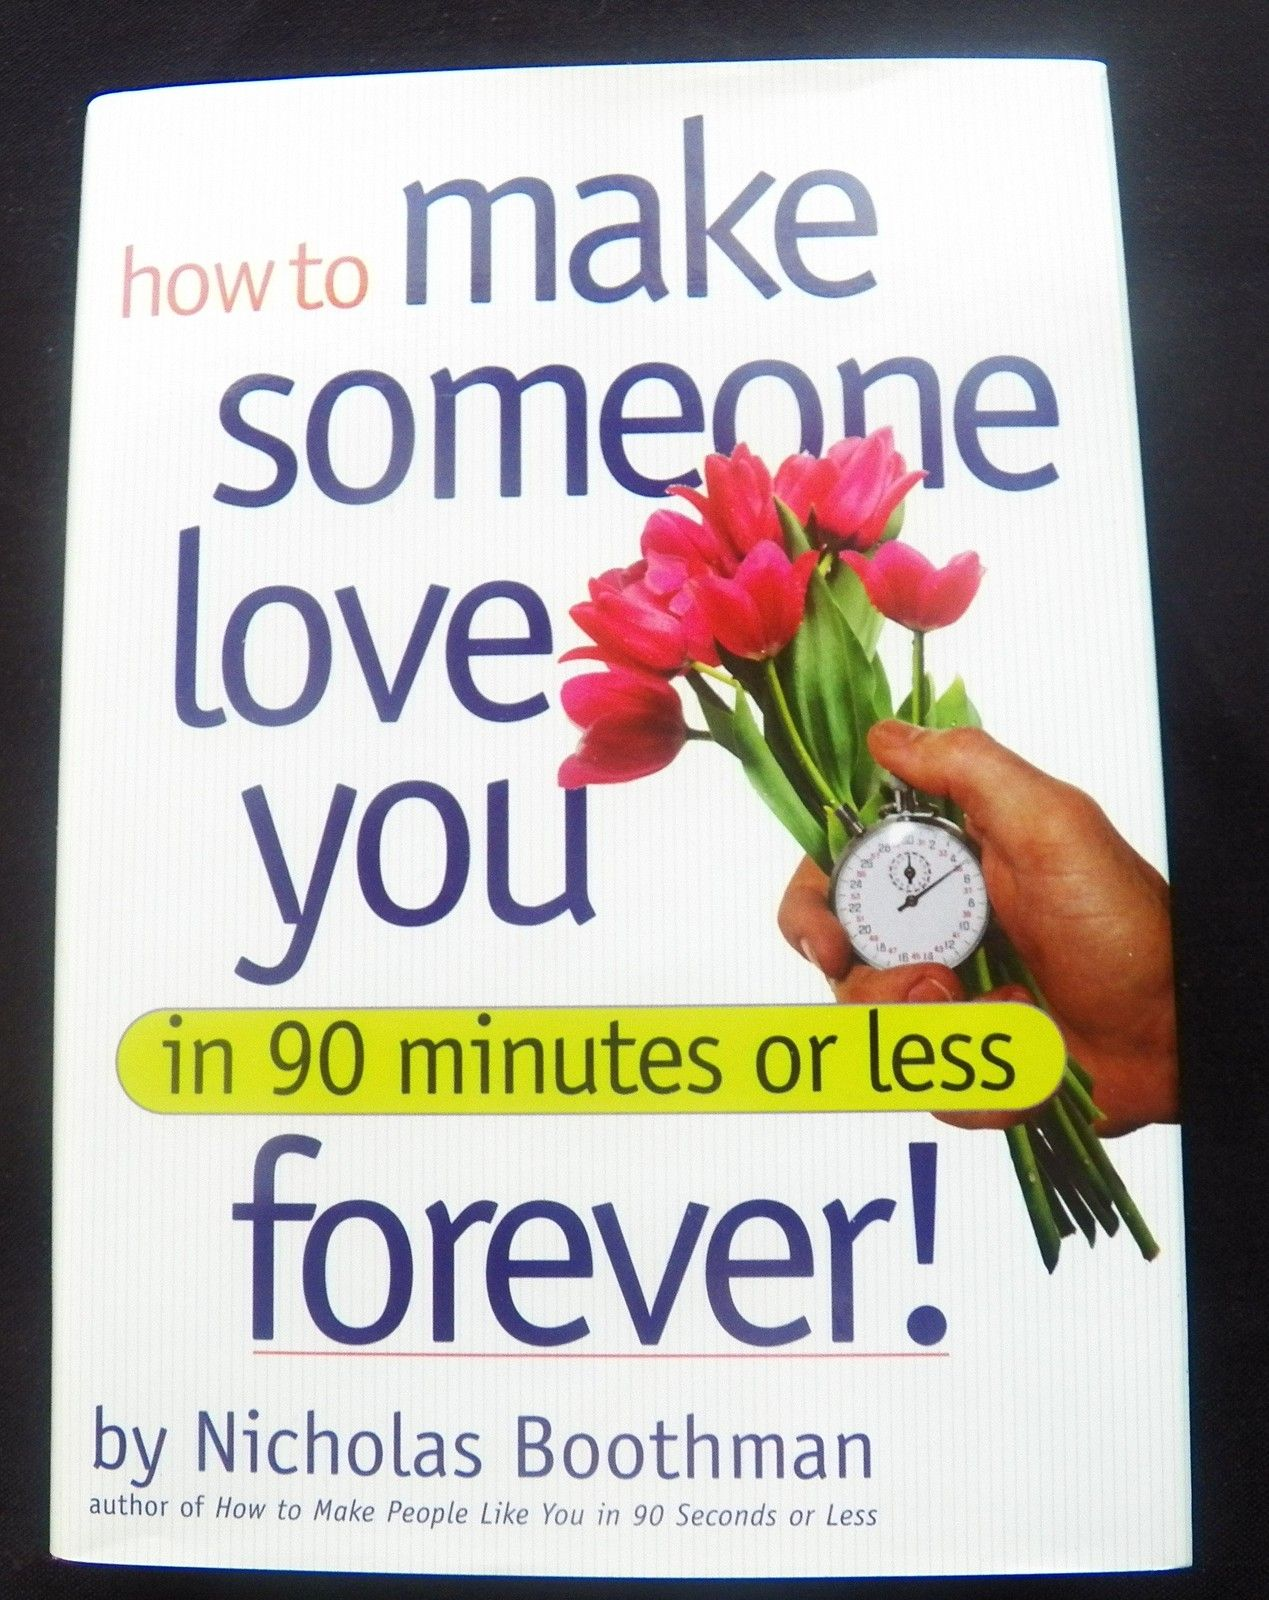 Pin By Book Resque Plus On Save Me From The Landfill If You Love Someone Love You Forever Love You